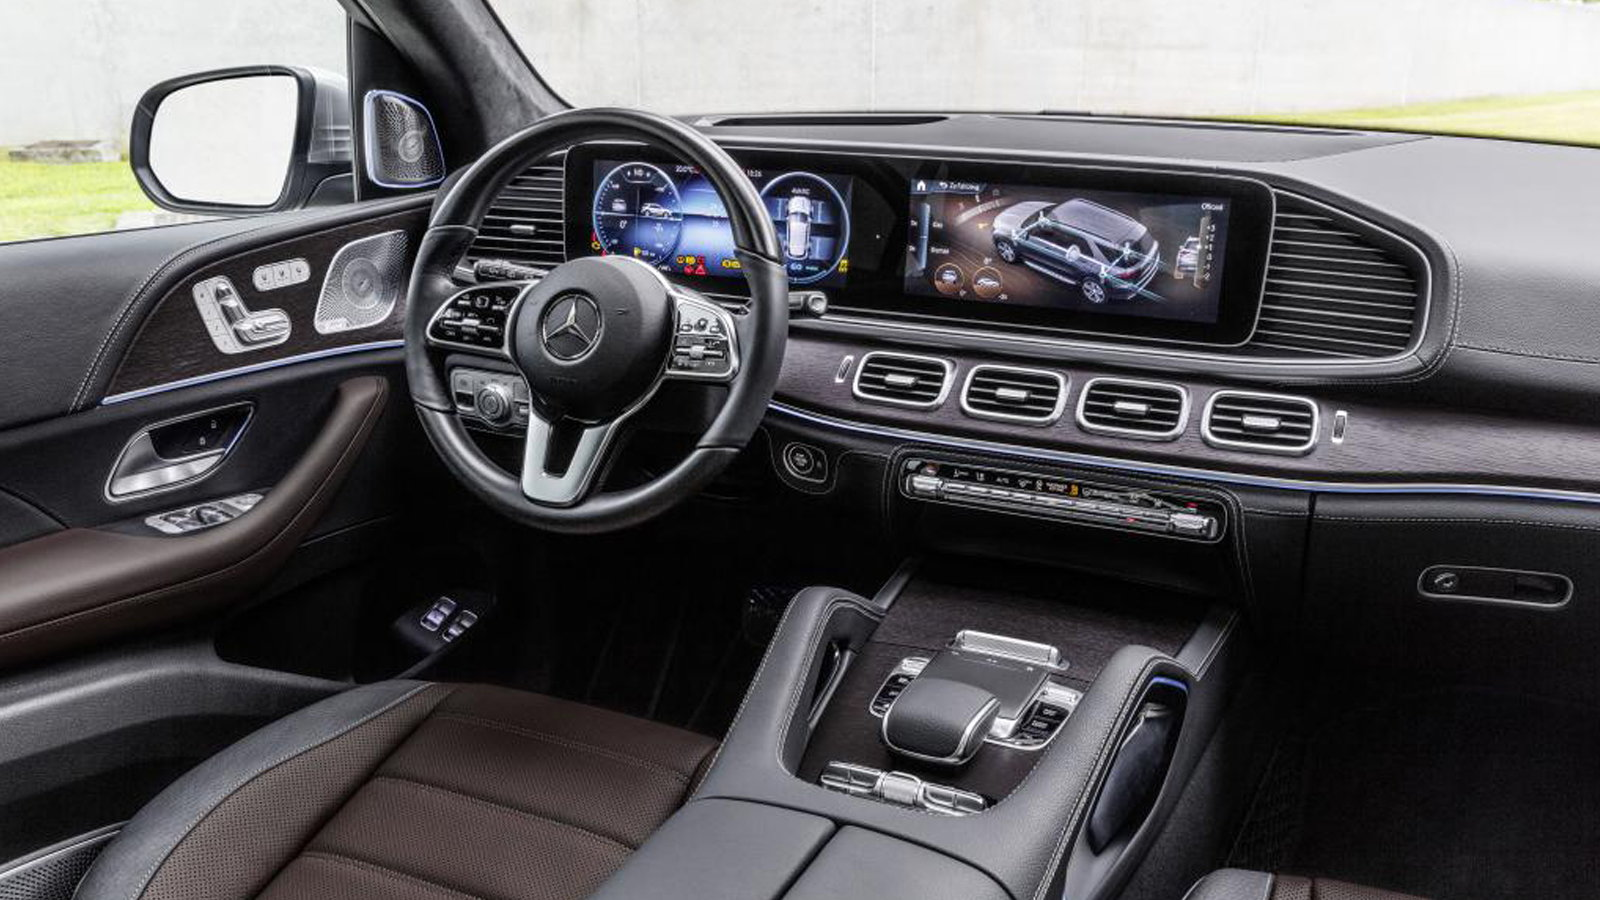 New Mercedes GLE: From Sketch to Reality